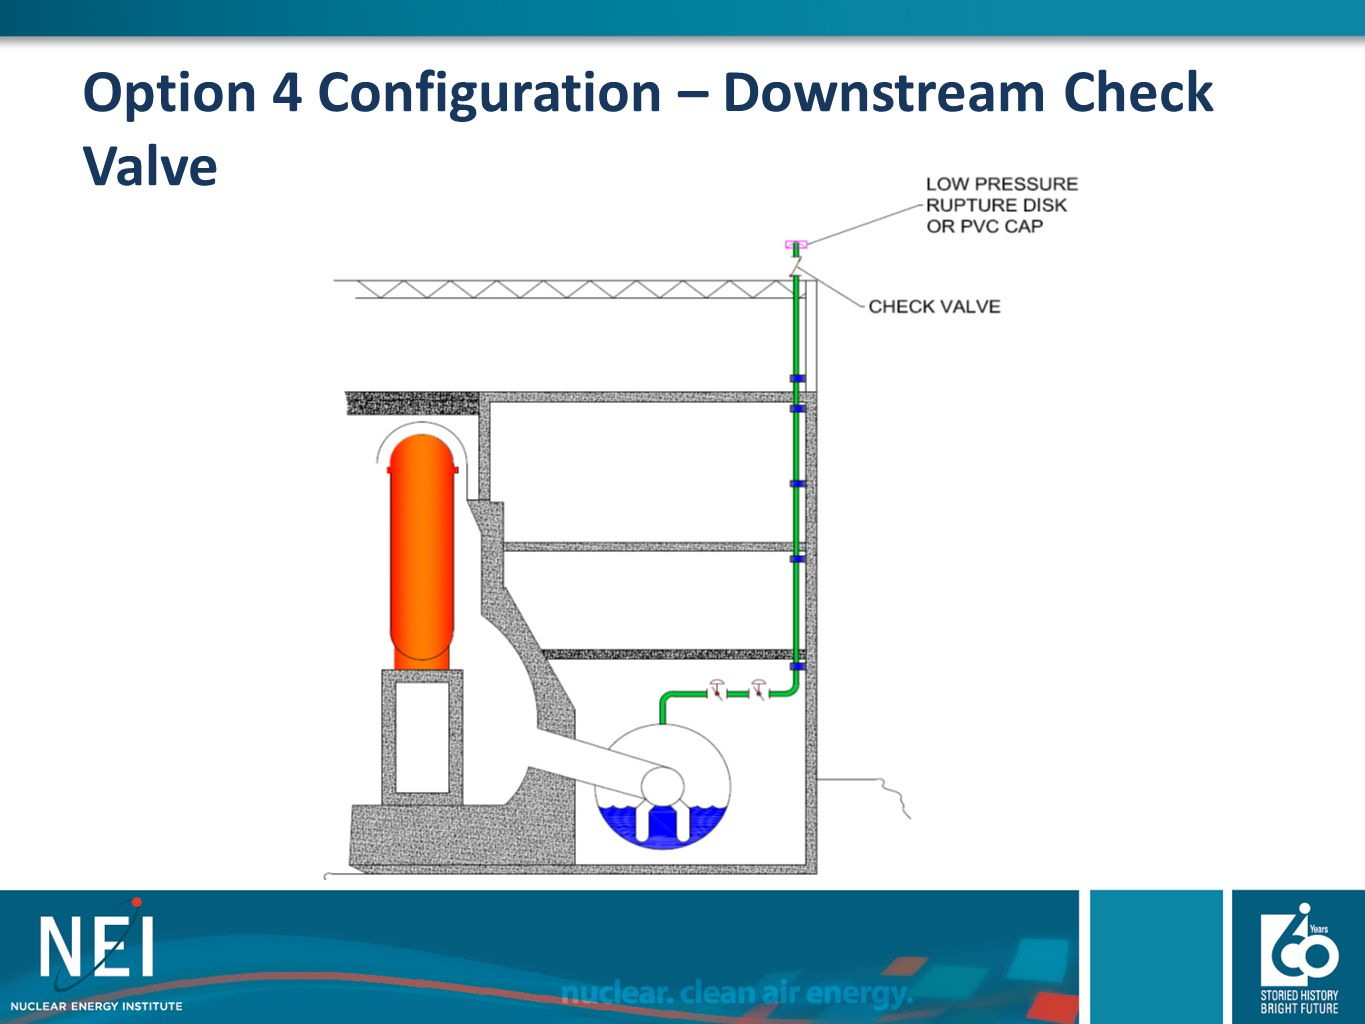 Option 4 Configuration – Downstream Check Valve